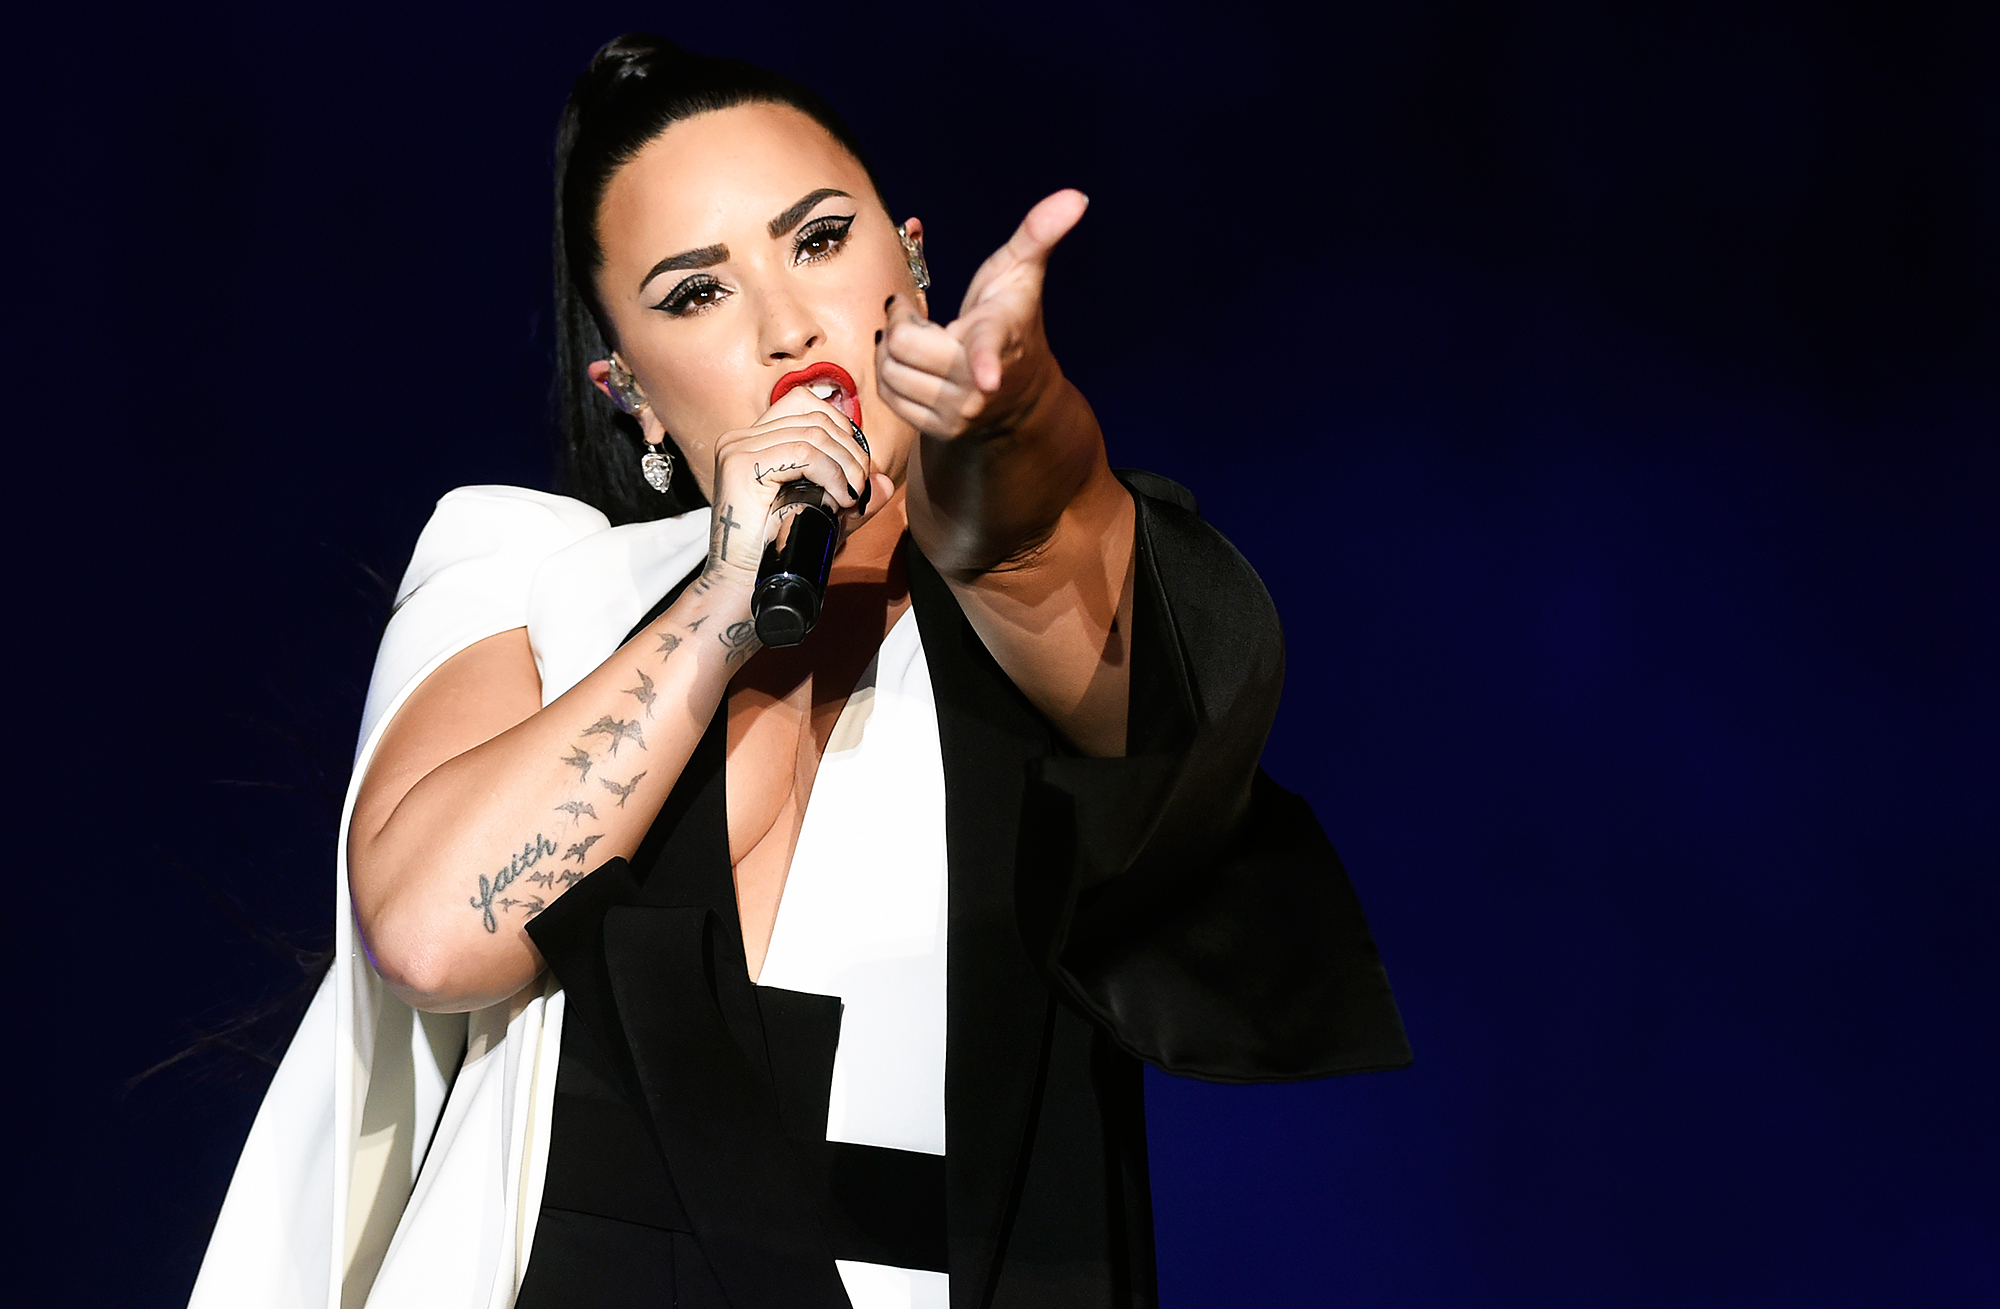 Demi Lovato 'Felt Terrible' & 'Really Depressed' About Disappointing Fans Following Relapse